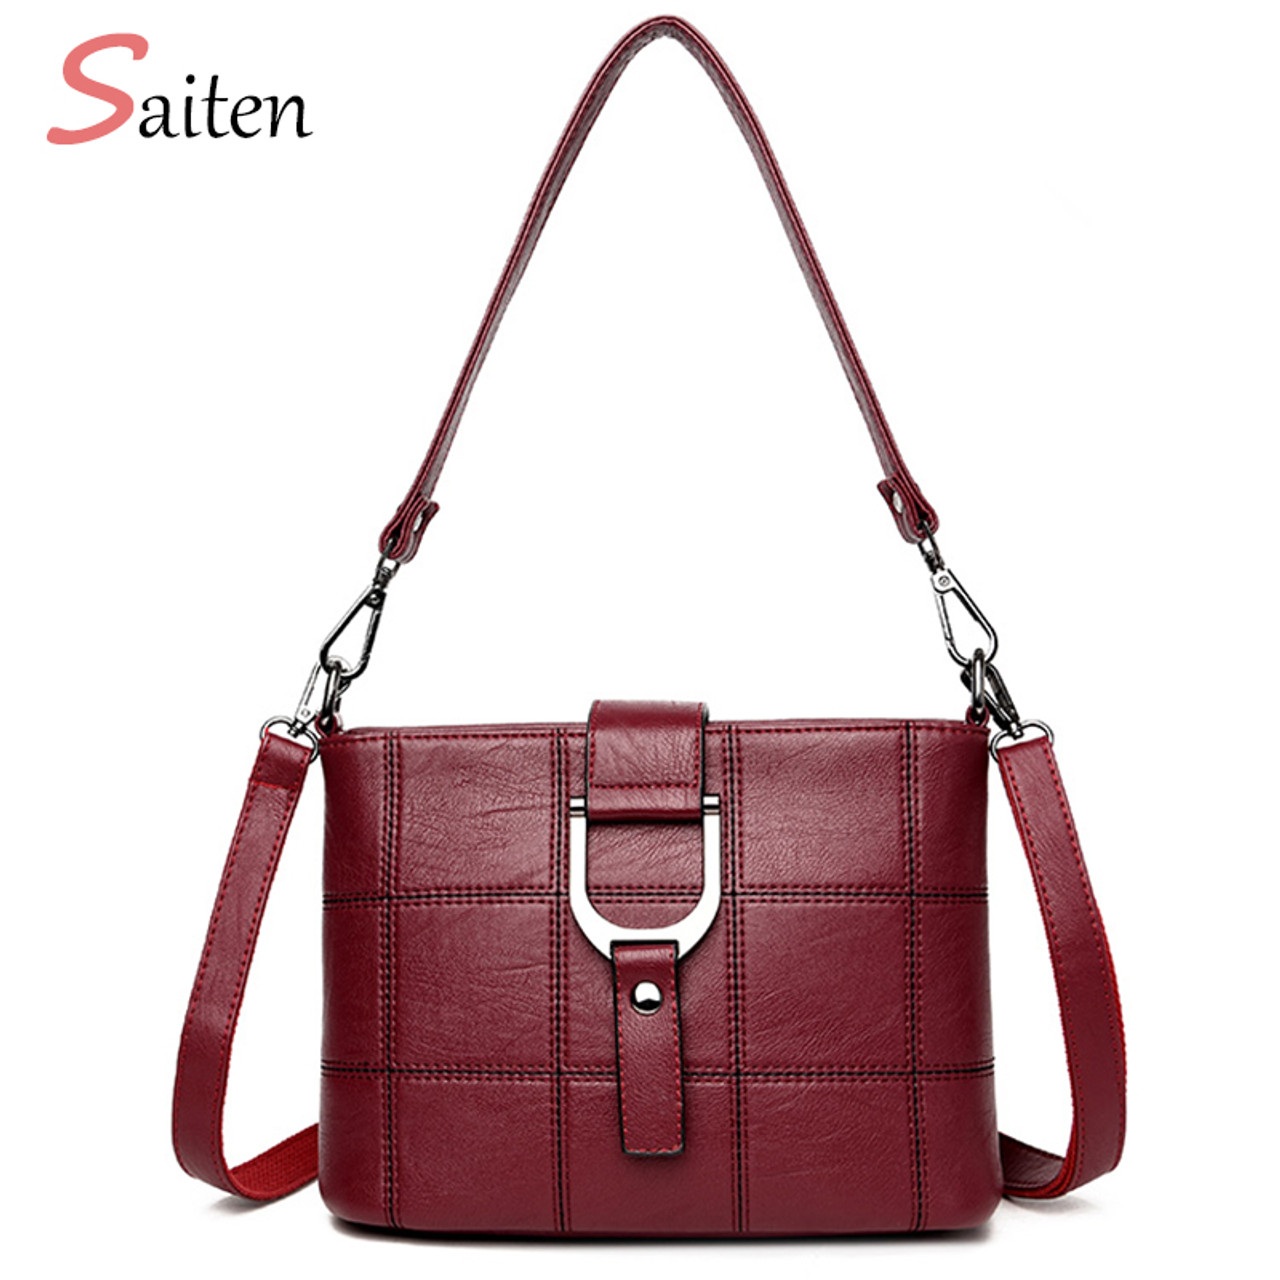 ... Luxury Women Messenger Bags Designer Woman Bag 2019 Brand Leather  Shoulder Bags Tote Bag sac a ... 069b66a83491d